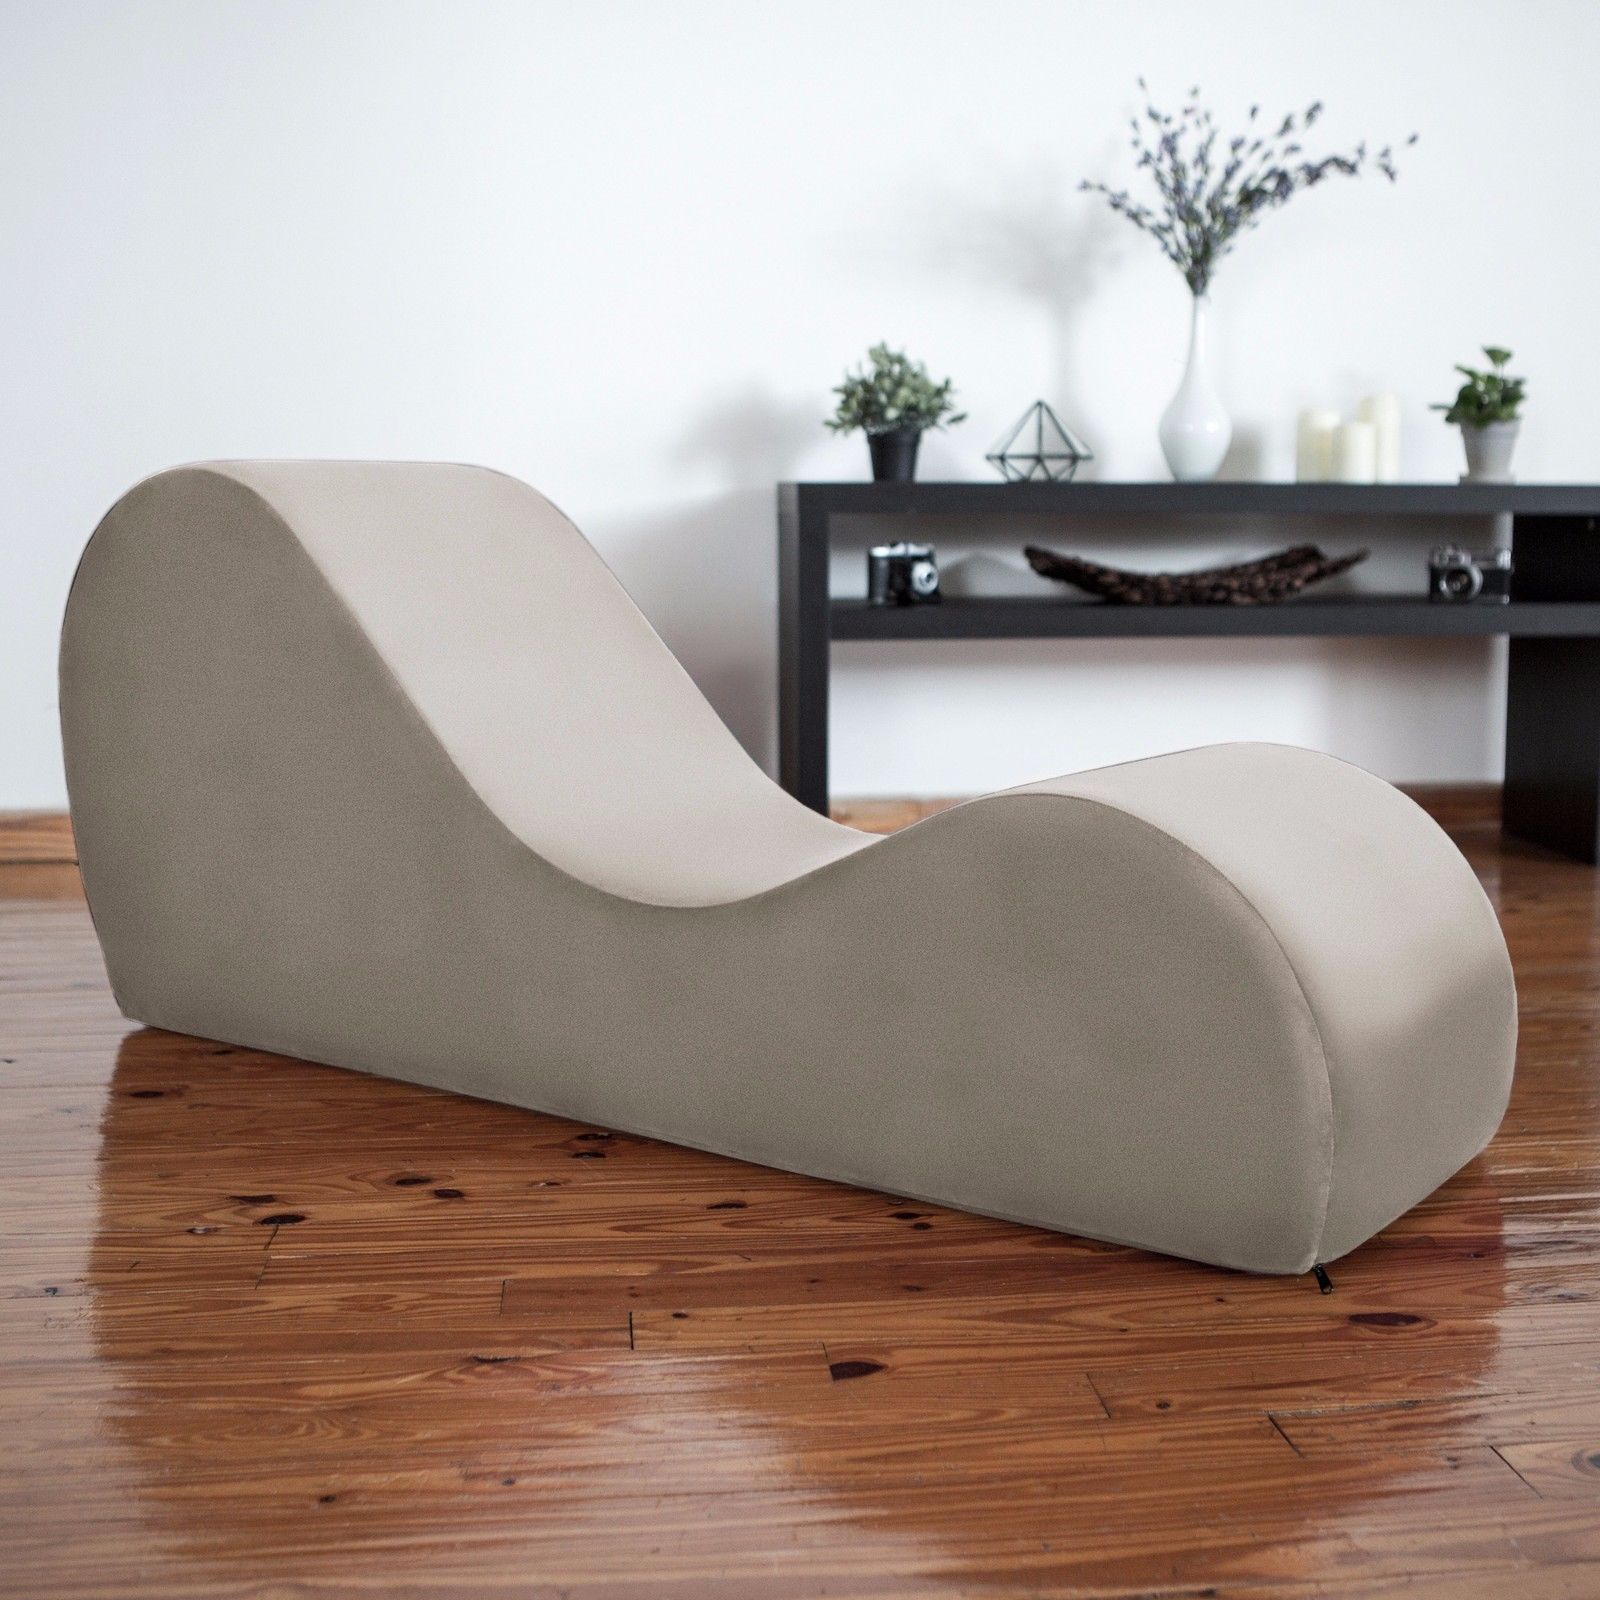 Liberator kama sutra chaise tantra lounger champagne for Furniture yoga